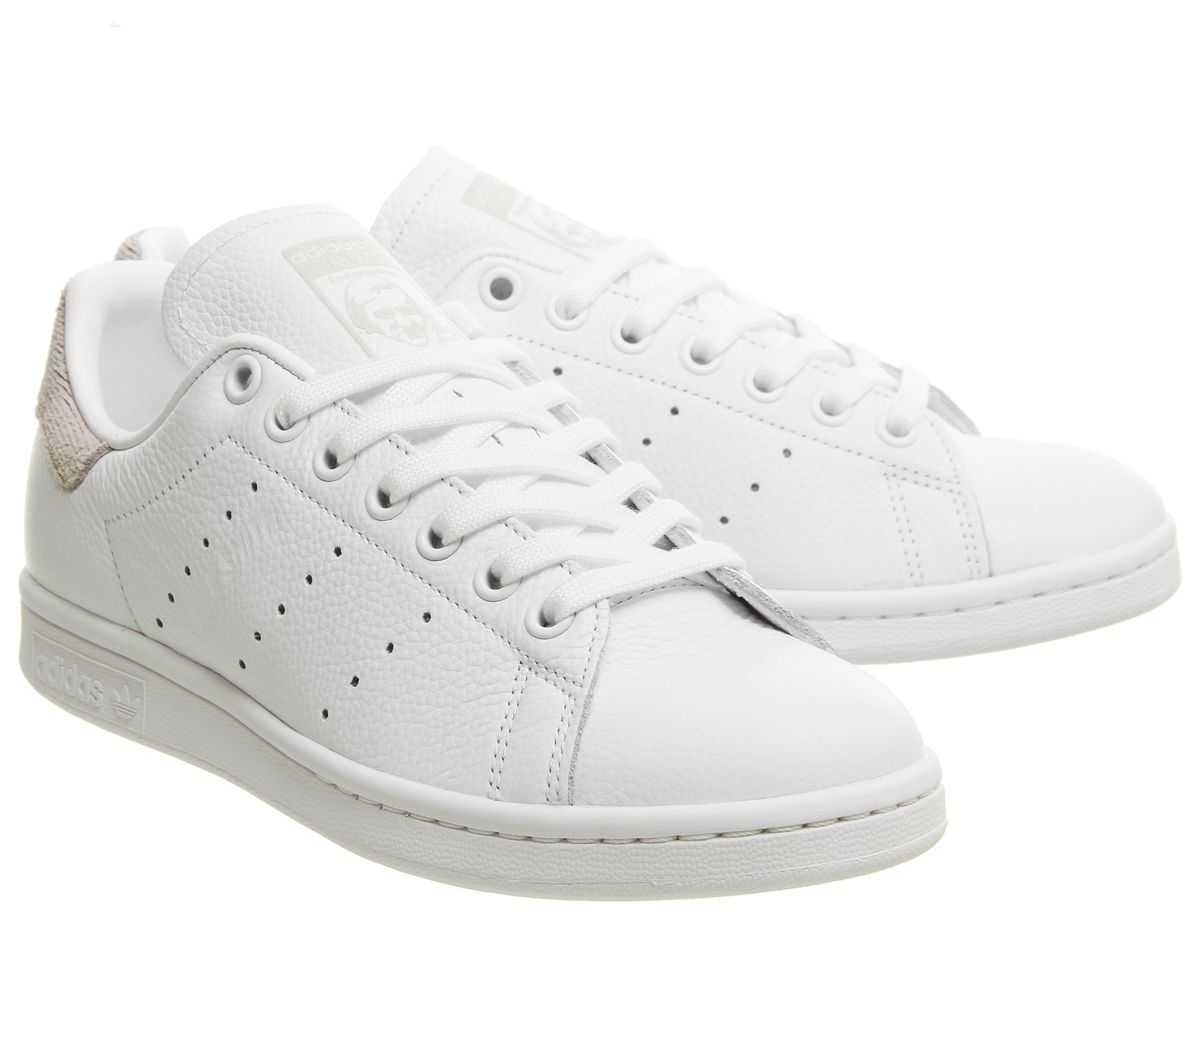 magasin en ligne 6bb21 cc3e4 Détails sur Short Femme Adidas Stan Smith Baskets White Orchid Tint Baskets  Chaussures- afficher le titre d'origine